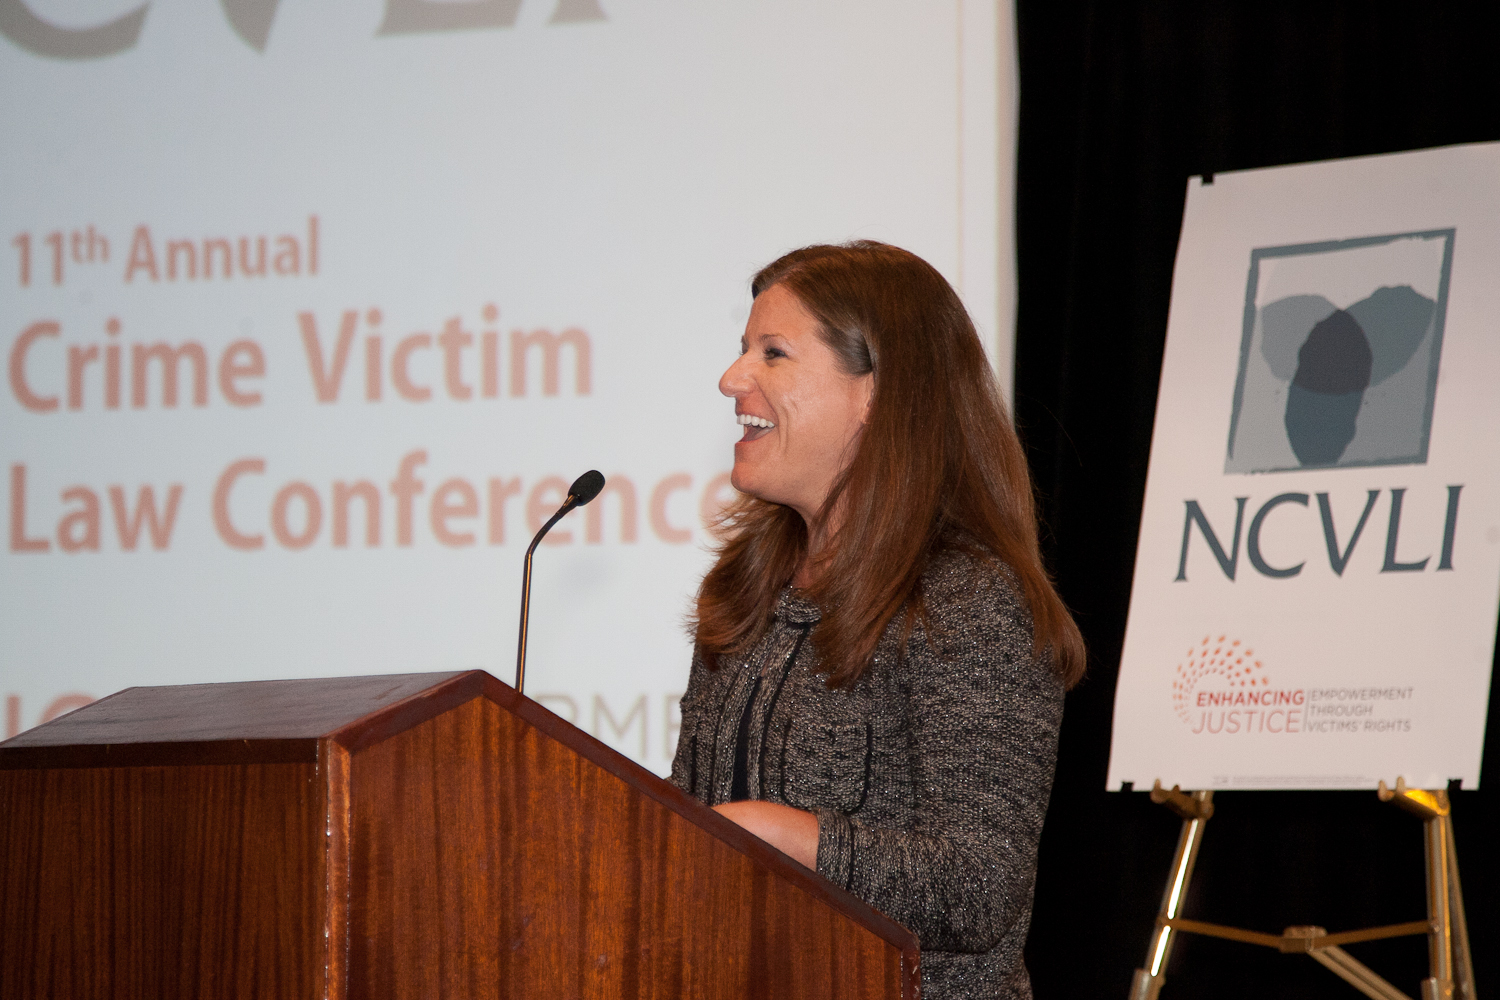 Jennifer Storm, author and executive director of the Victim/Witness Assistance Program in Harrisb...